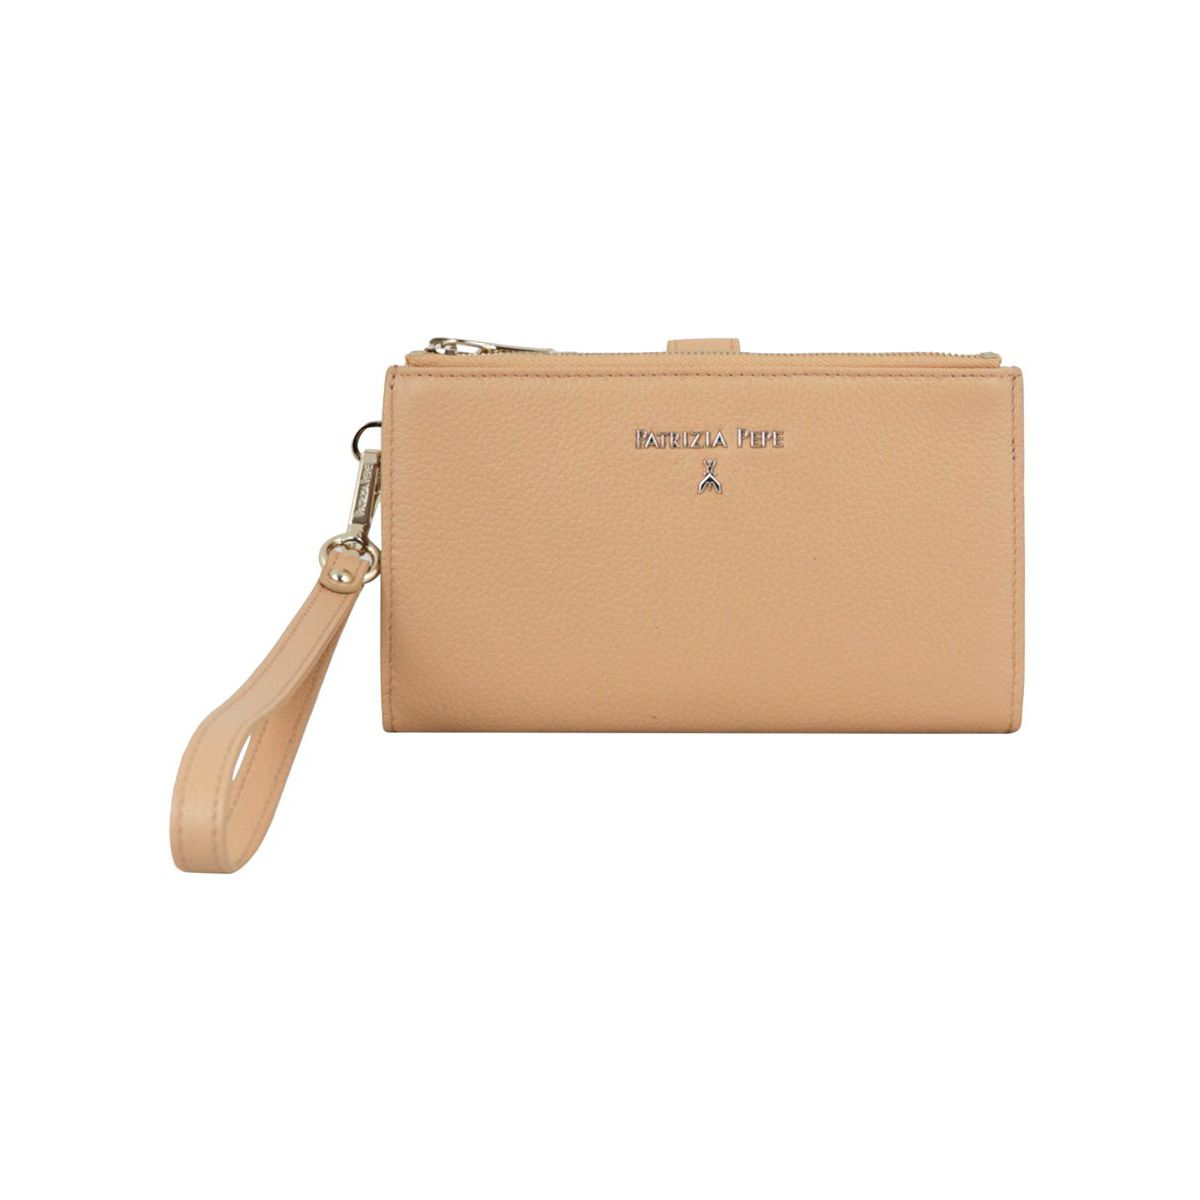 Leather wallet with double zip Beige Patrizia Pepe